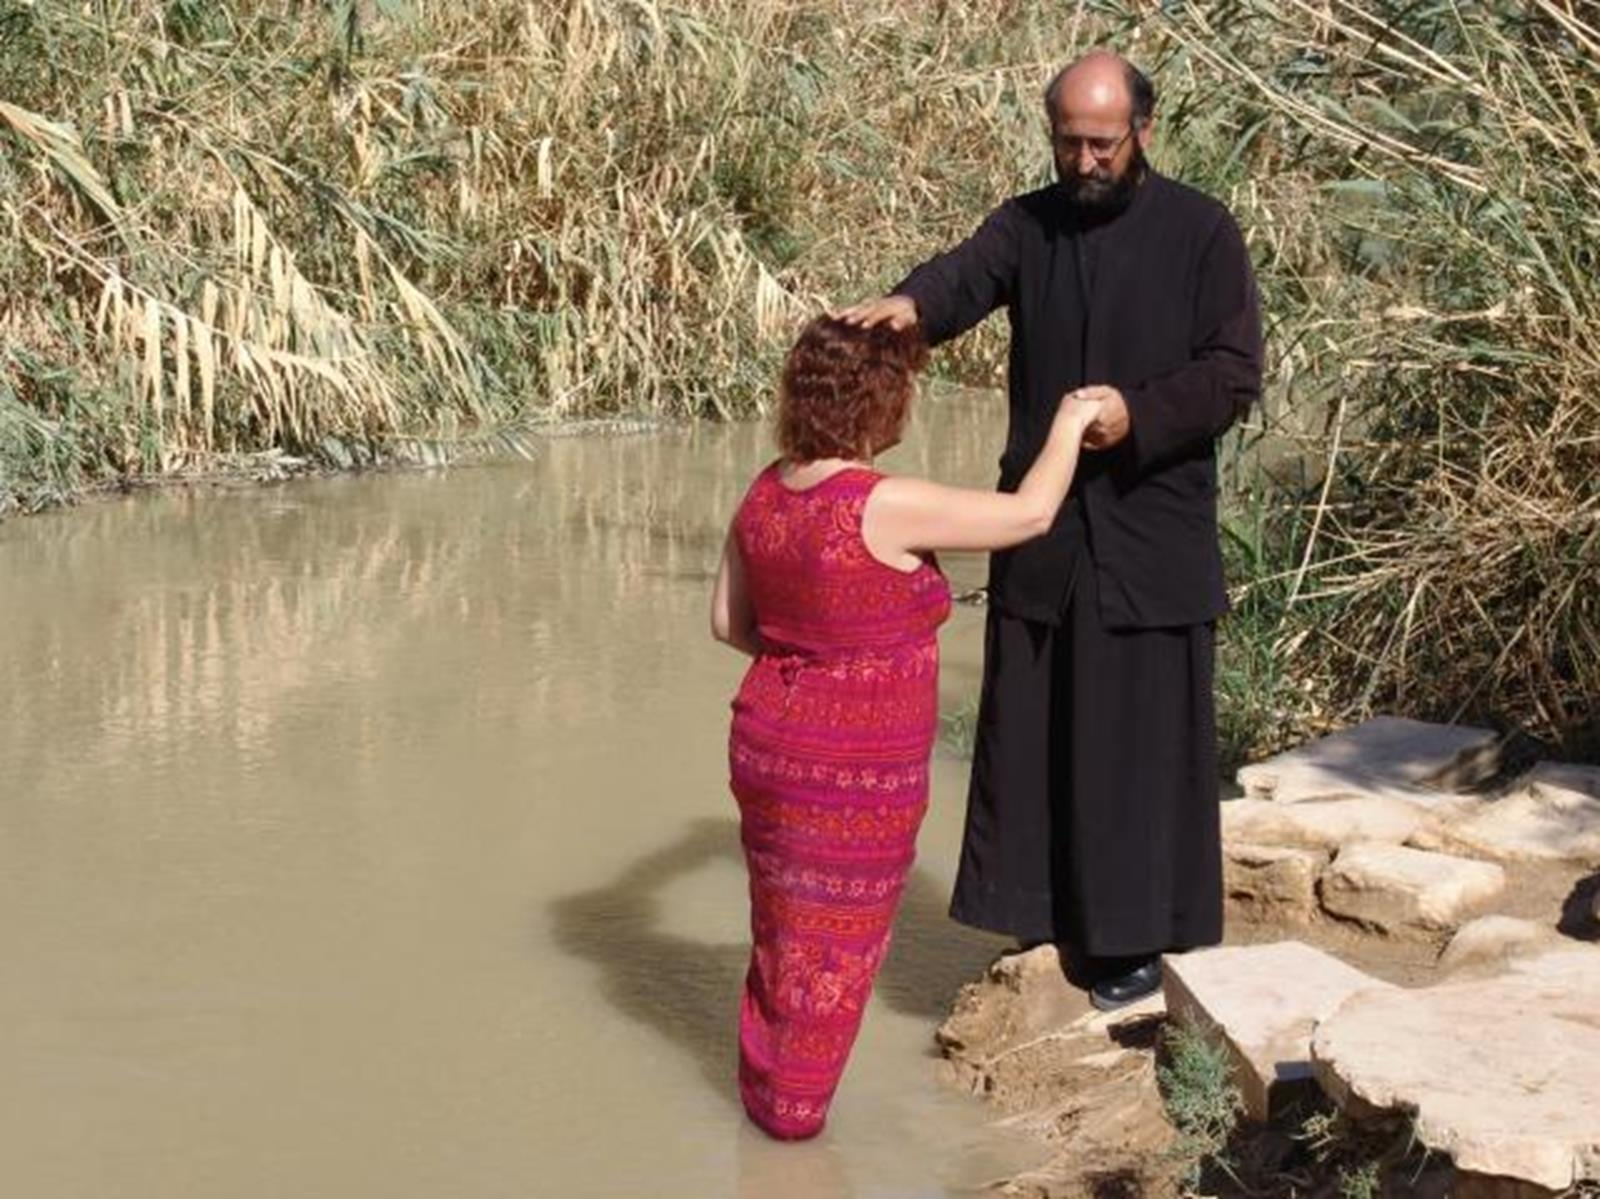 Bethany Beyond the Jordan, a Baptism Park that has been Undergoing Rapid Development